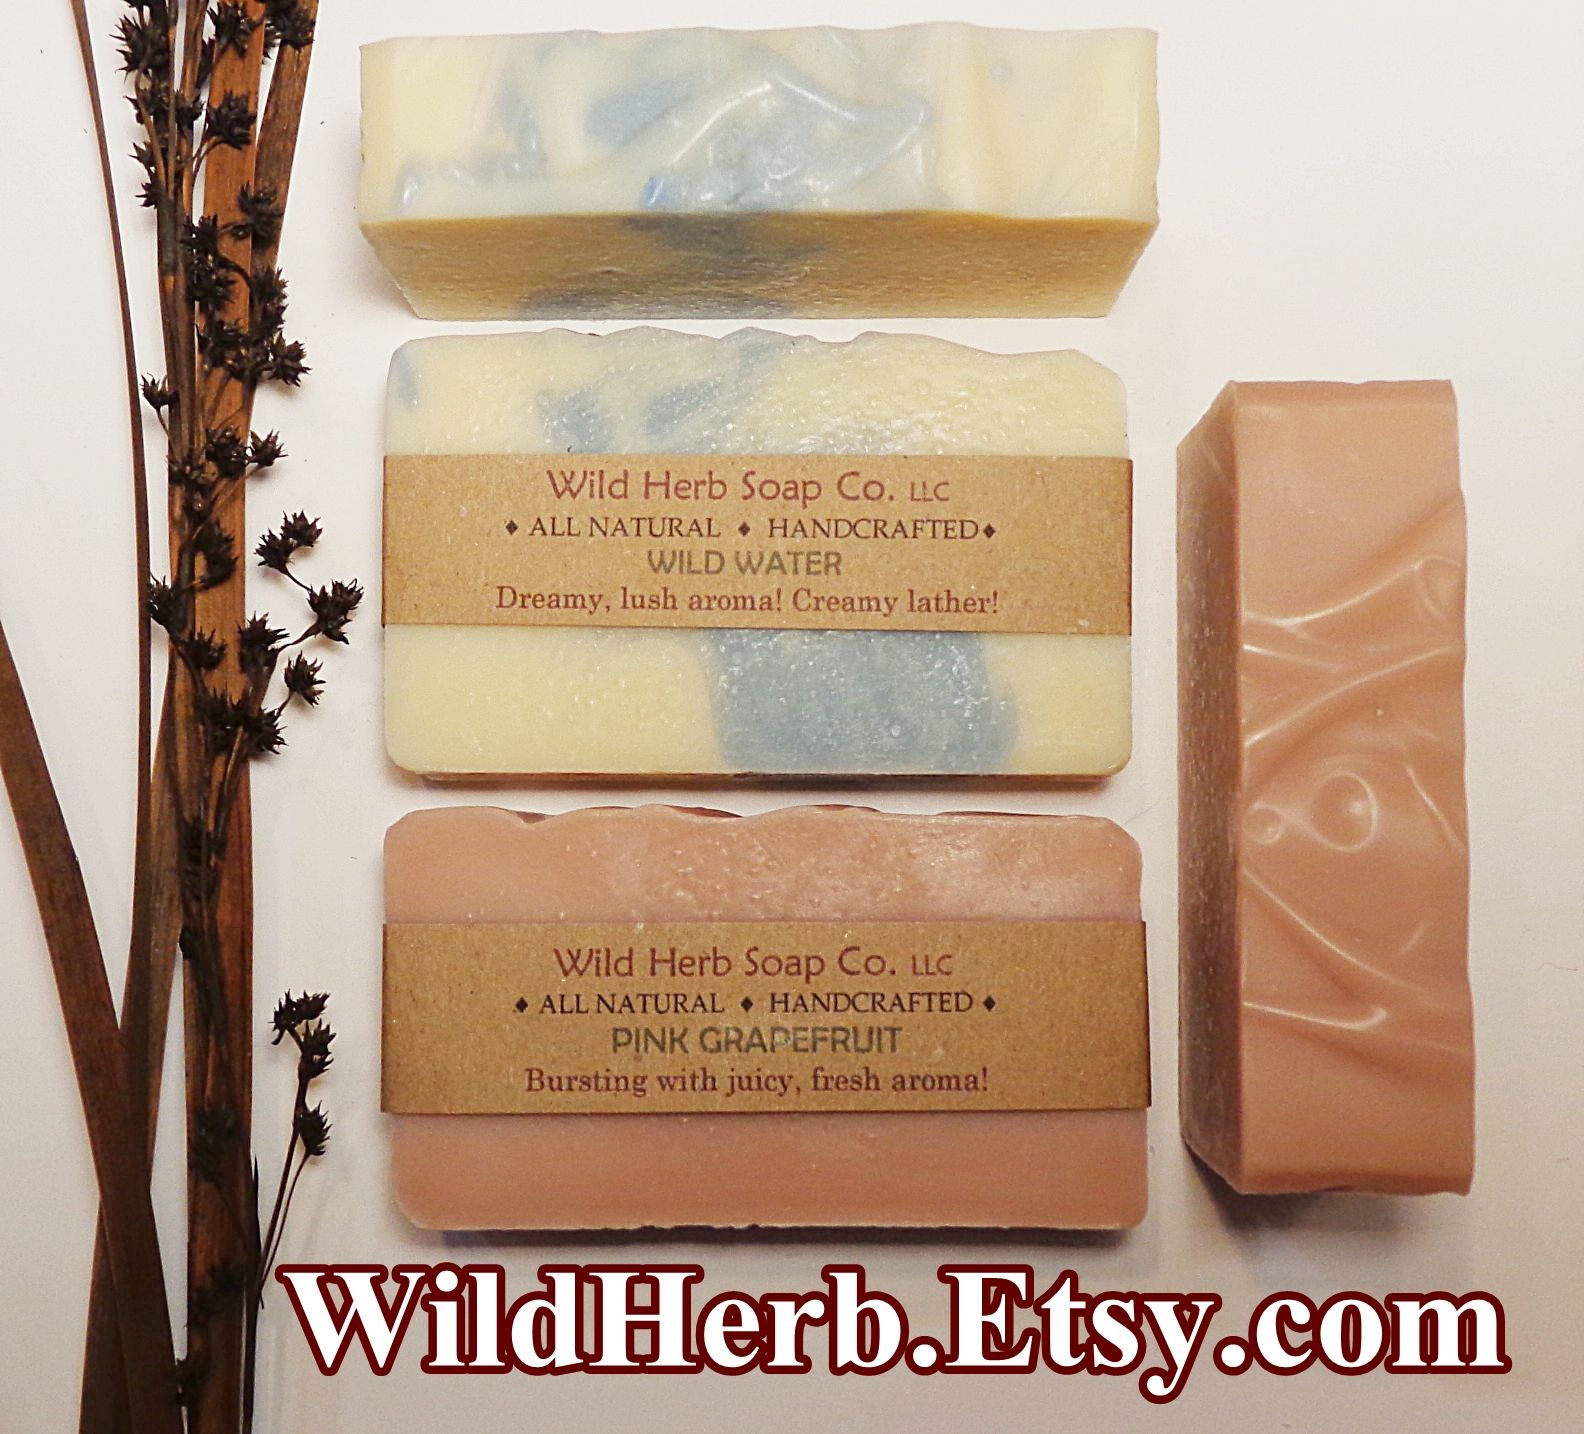 NEW SCENTS from Wild Herb Soap Co. Our 2 new scents will create a splash in your life! Yes, it's our usual base formula featuring exotic Mango Butter, Palm Kernel, Rice Bran & Olive oils. Plus pure essential oils for the scent! Wild Water & Pink Grapefruit await your verdict......let us know what you think!